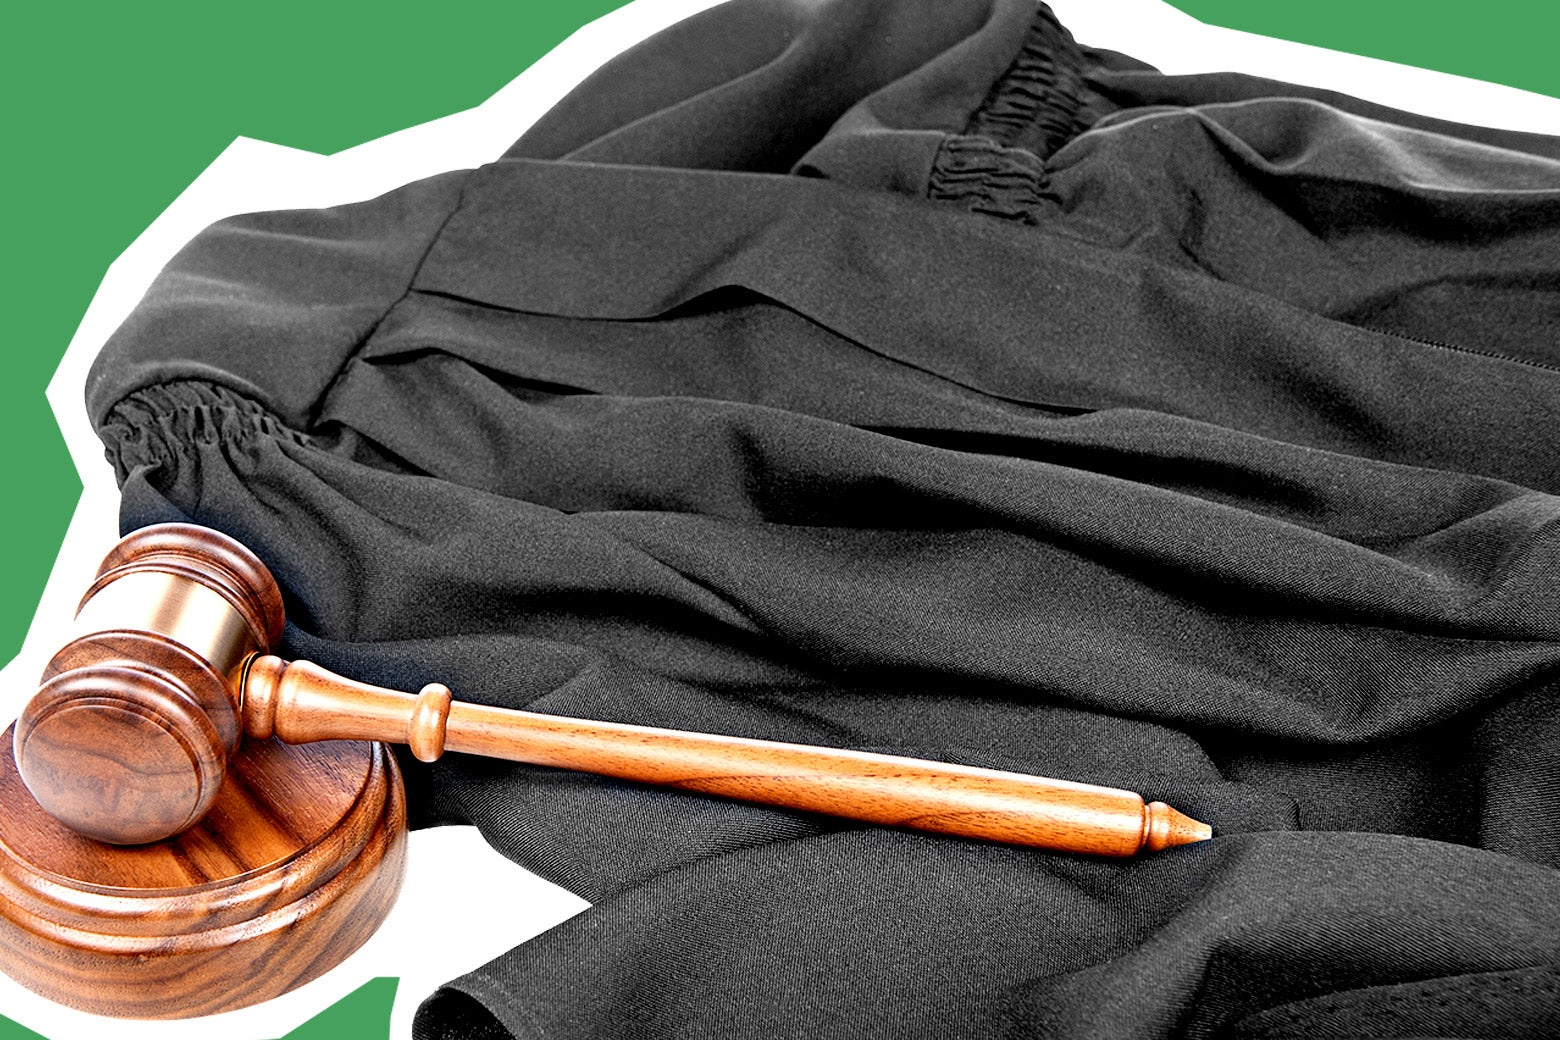 Judge robes and a gavel